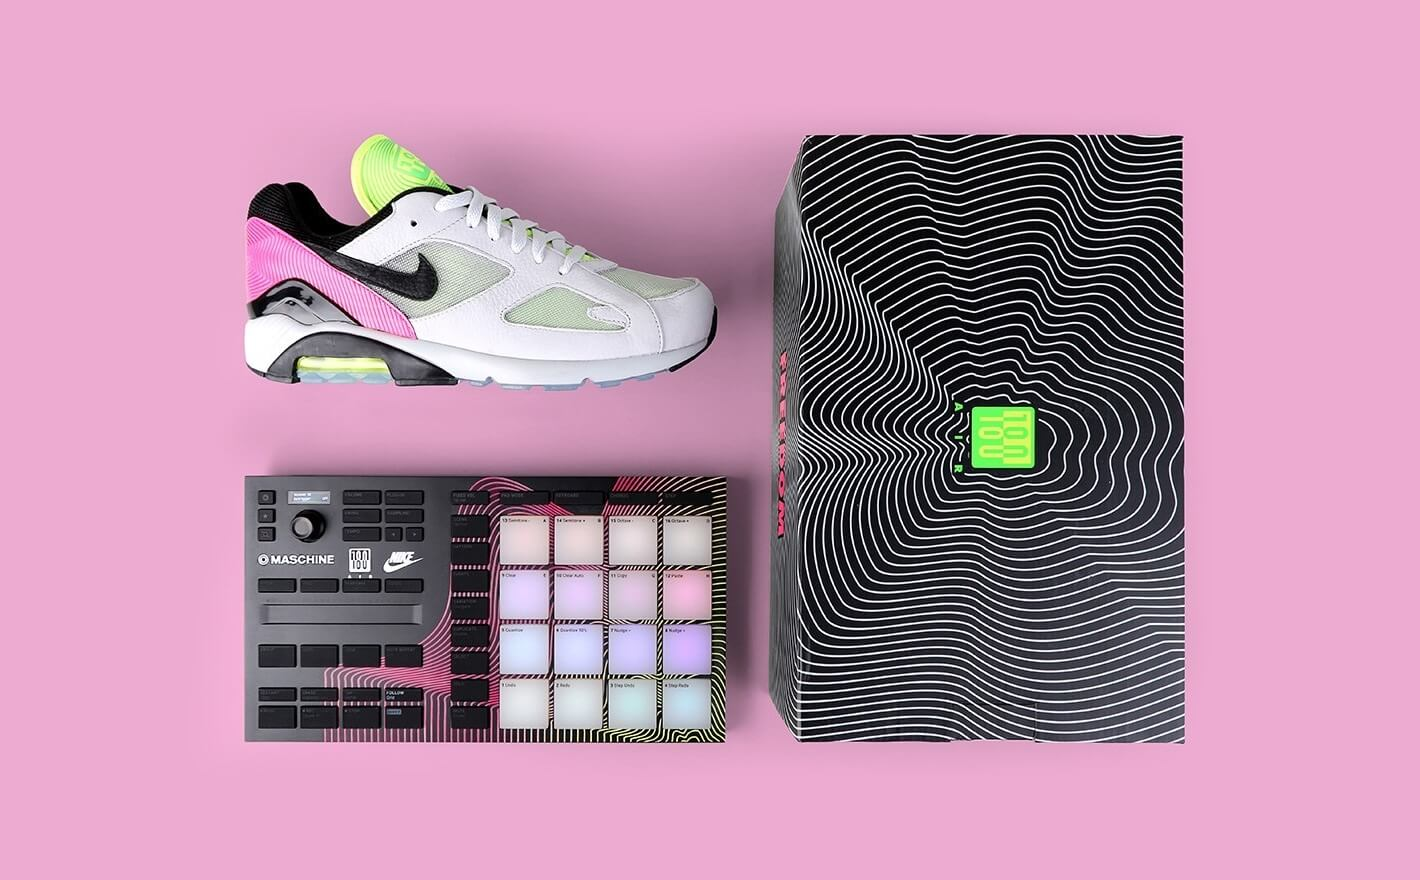 495d98f7793 Native Instruments Giveaway: Nike Air Max 180 & customized Maschine Mikro